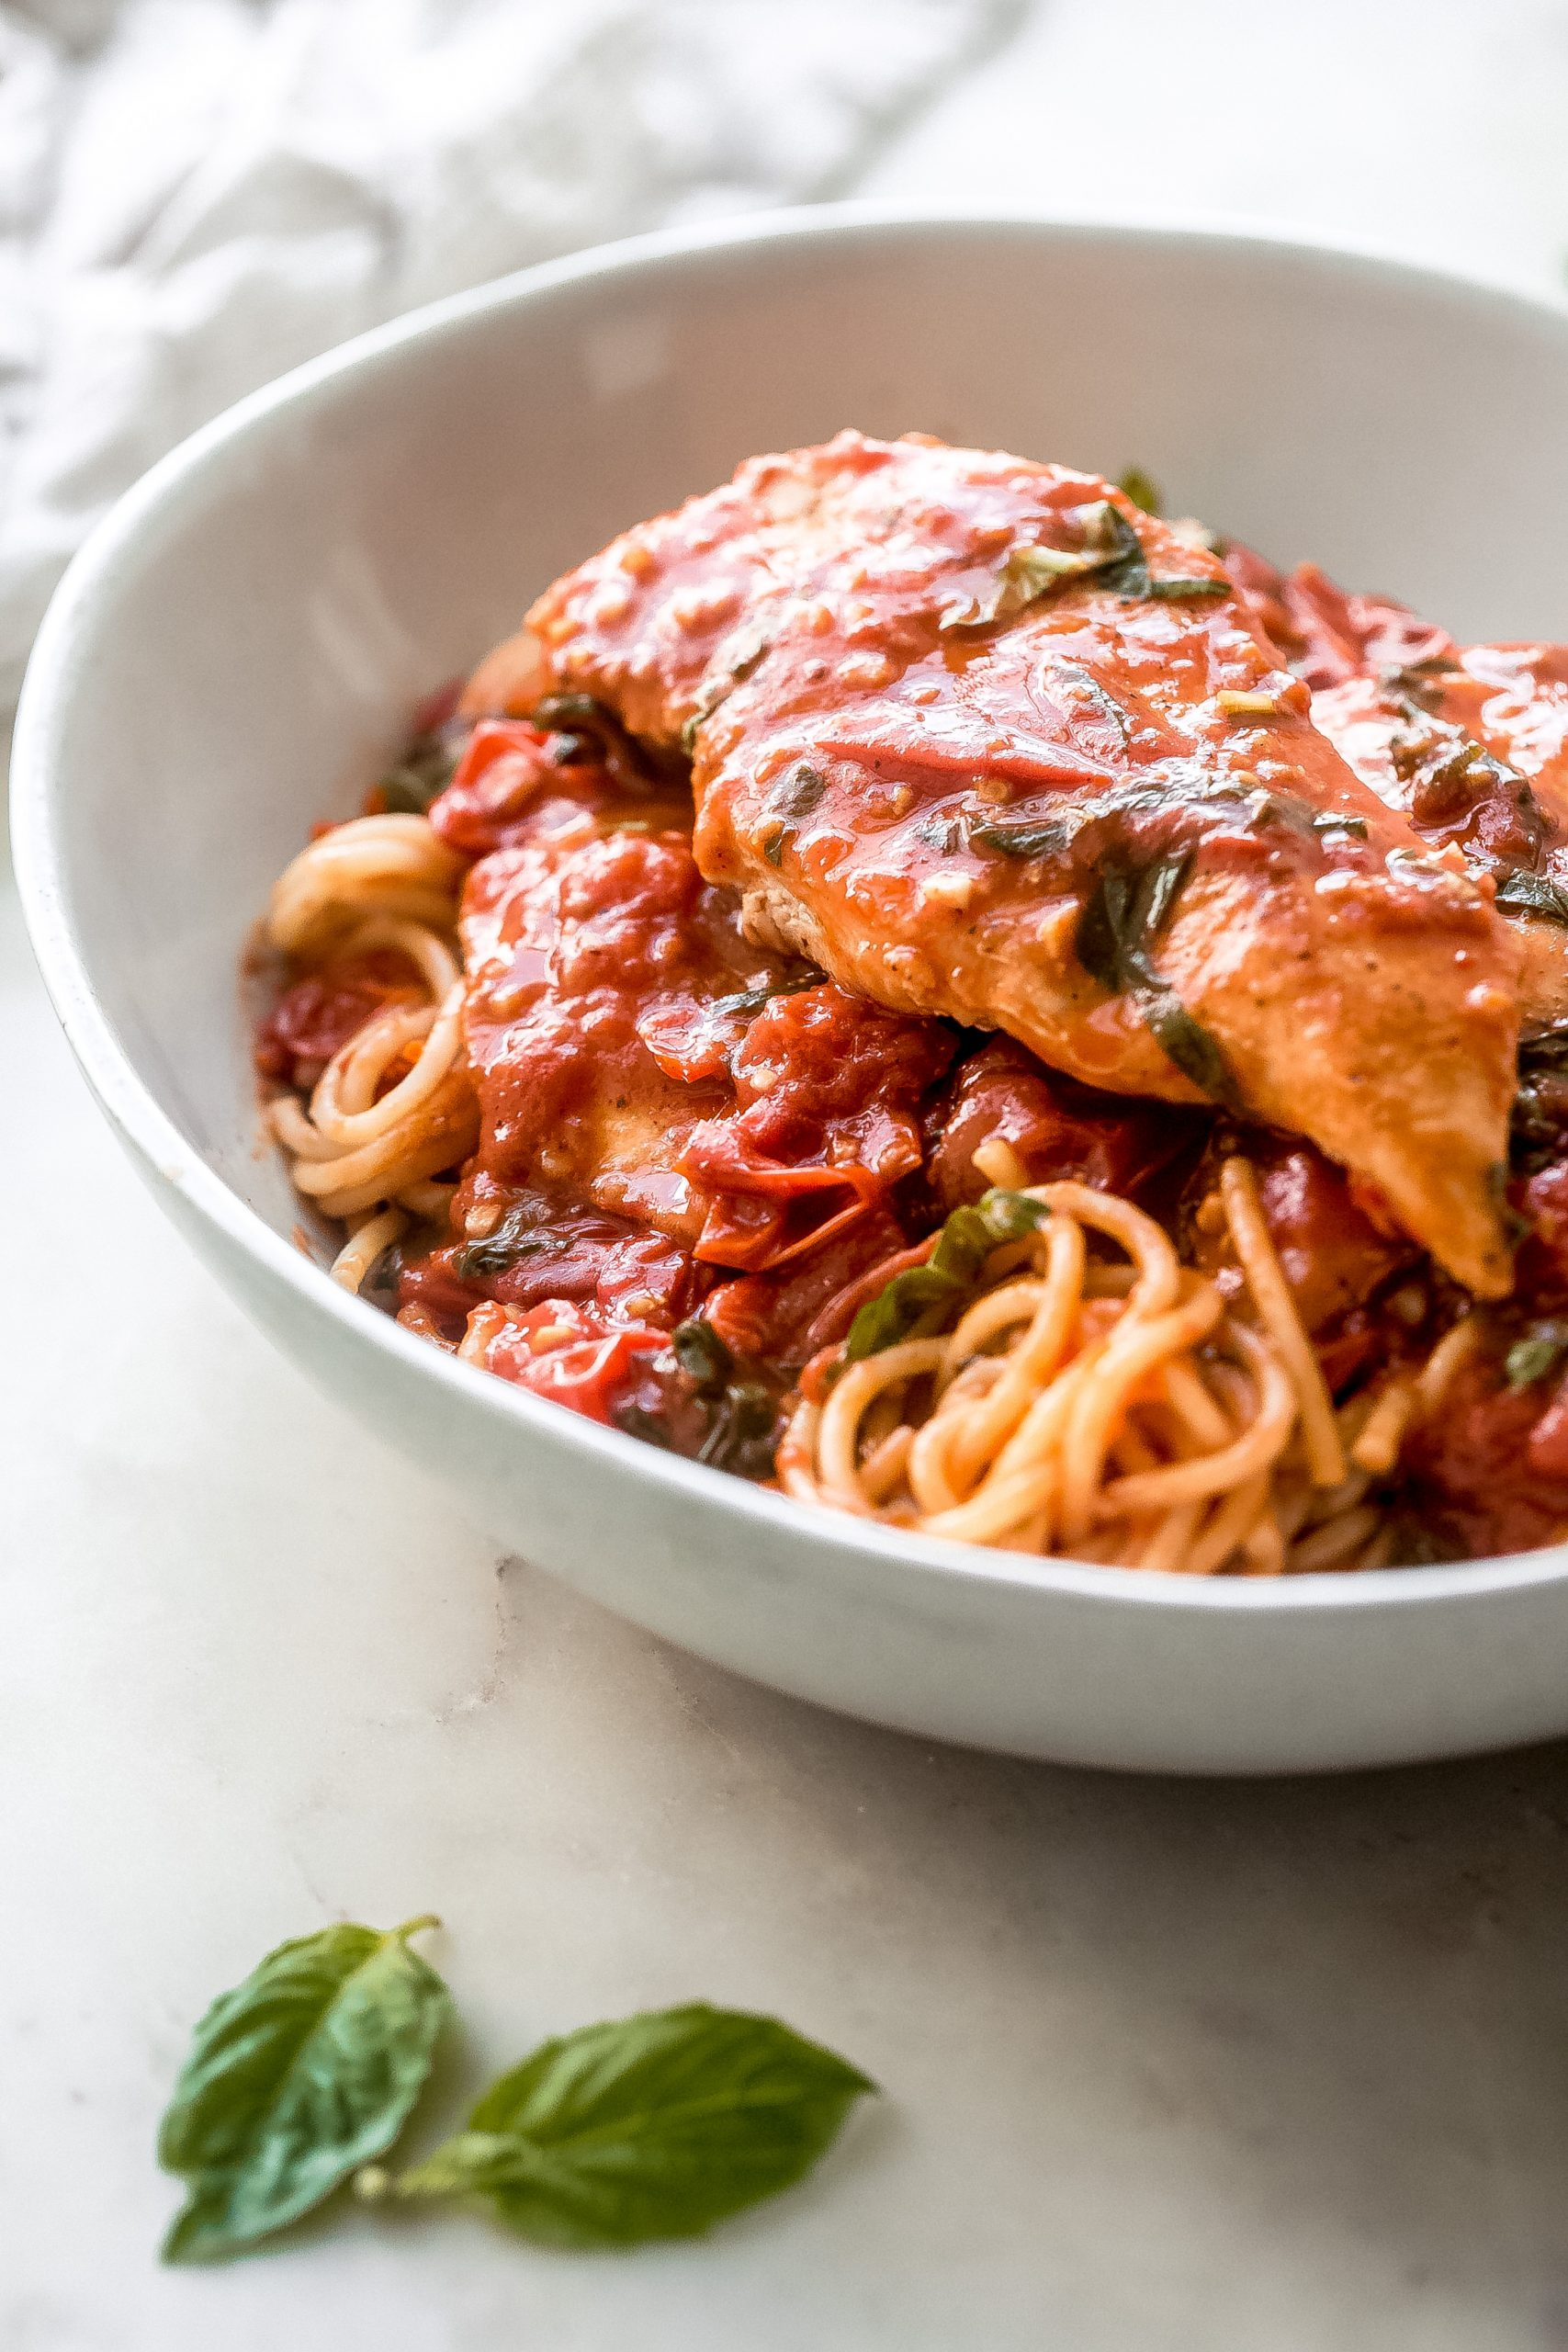 spaghetti in bowl topped with tomato basil pan sauce and seared chicken filet